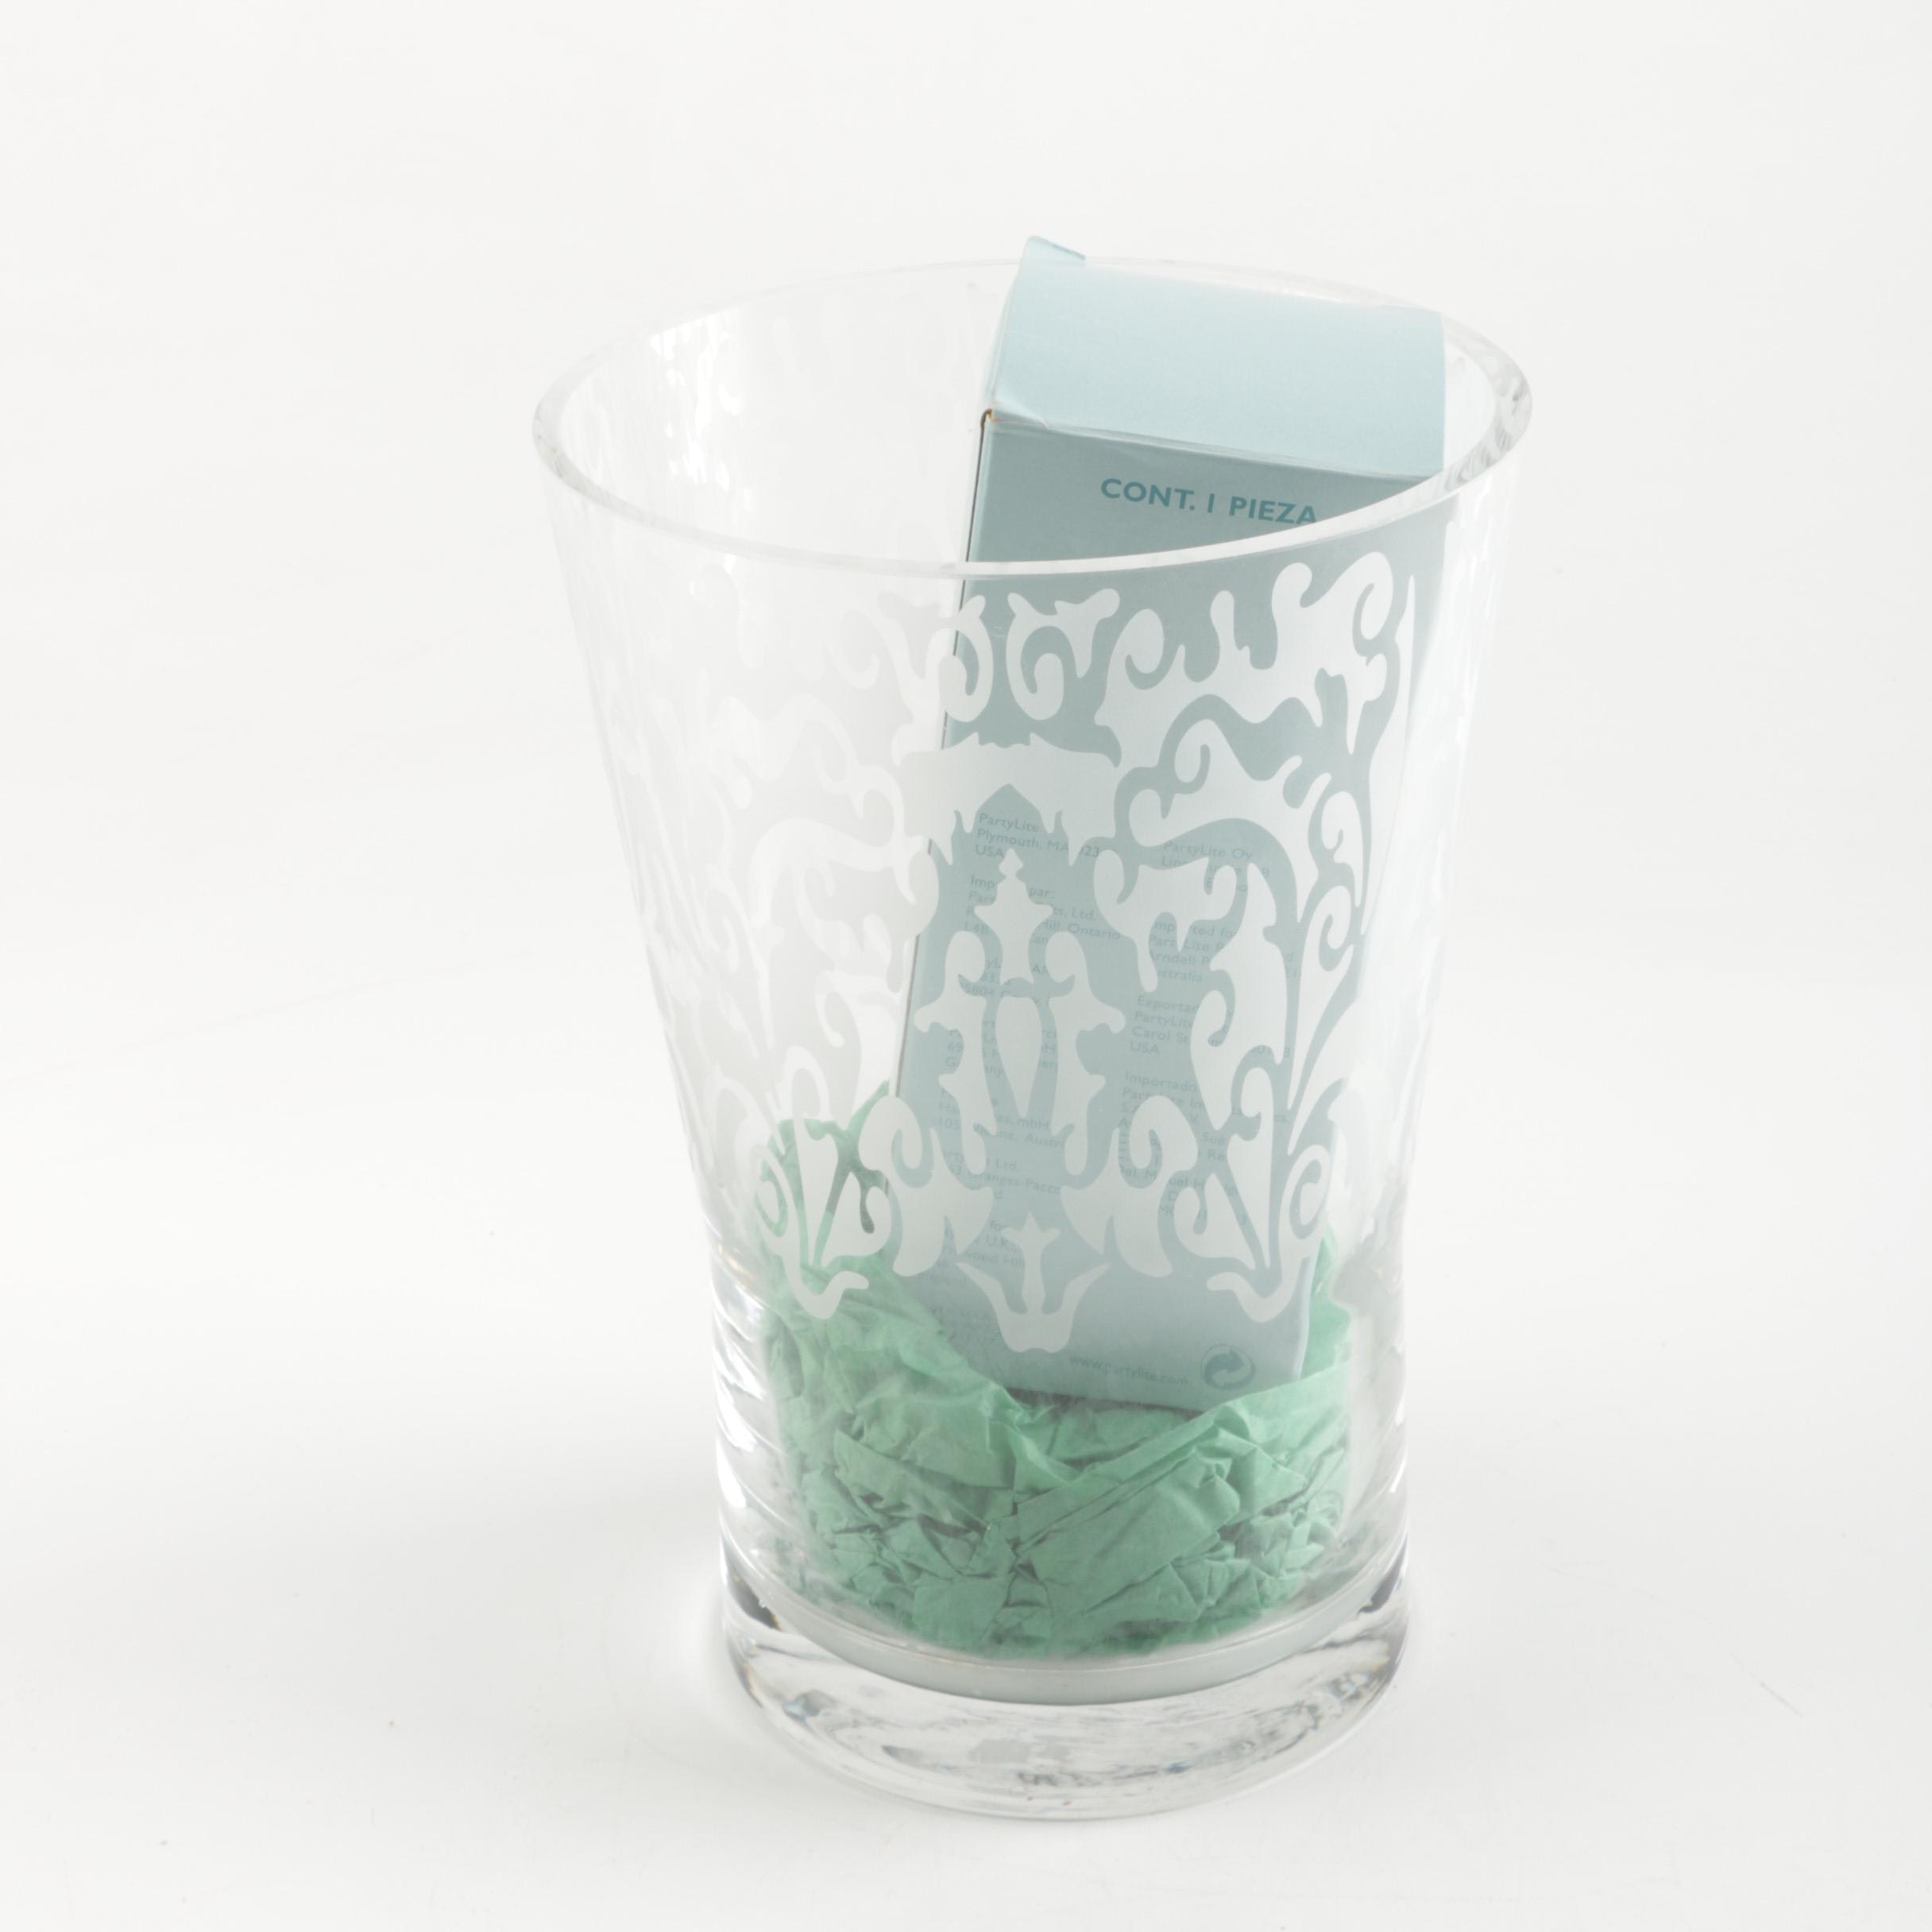 PartyLite Frosted Glass Hurricane Style Candle Holder